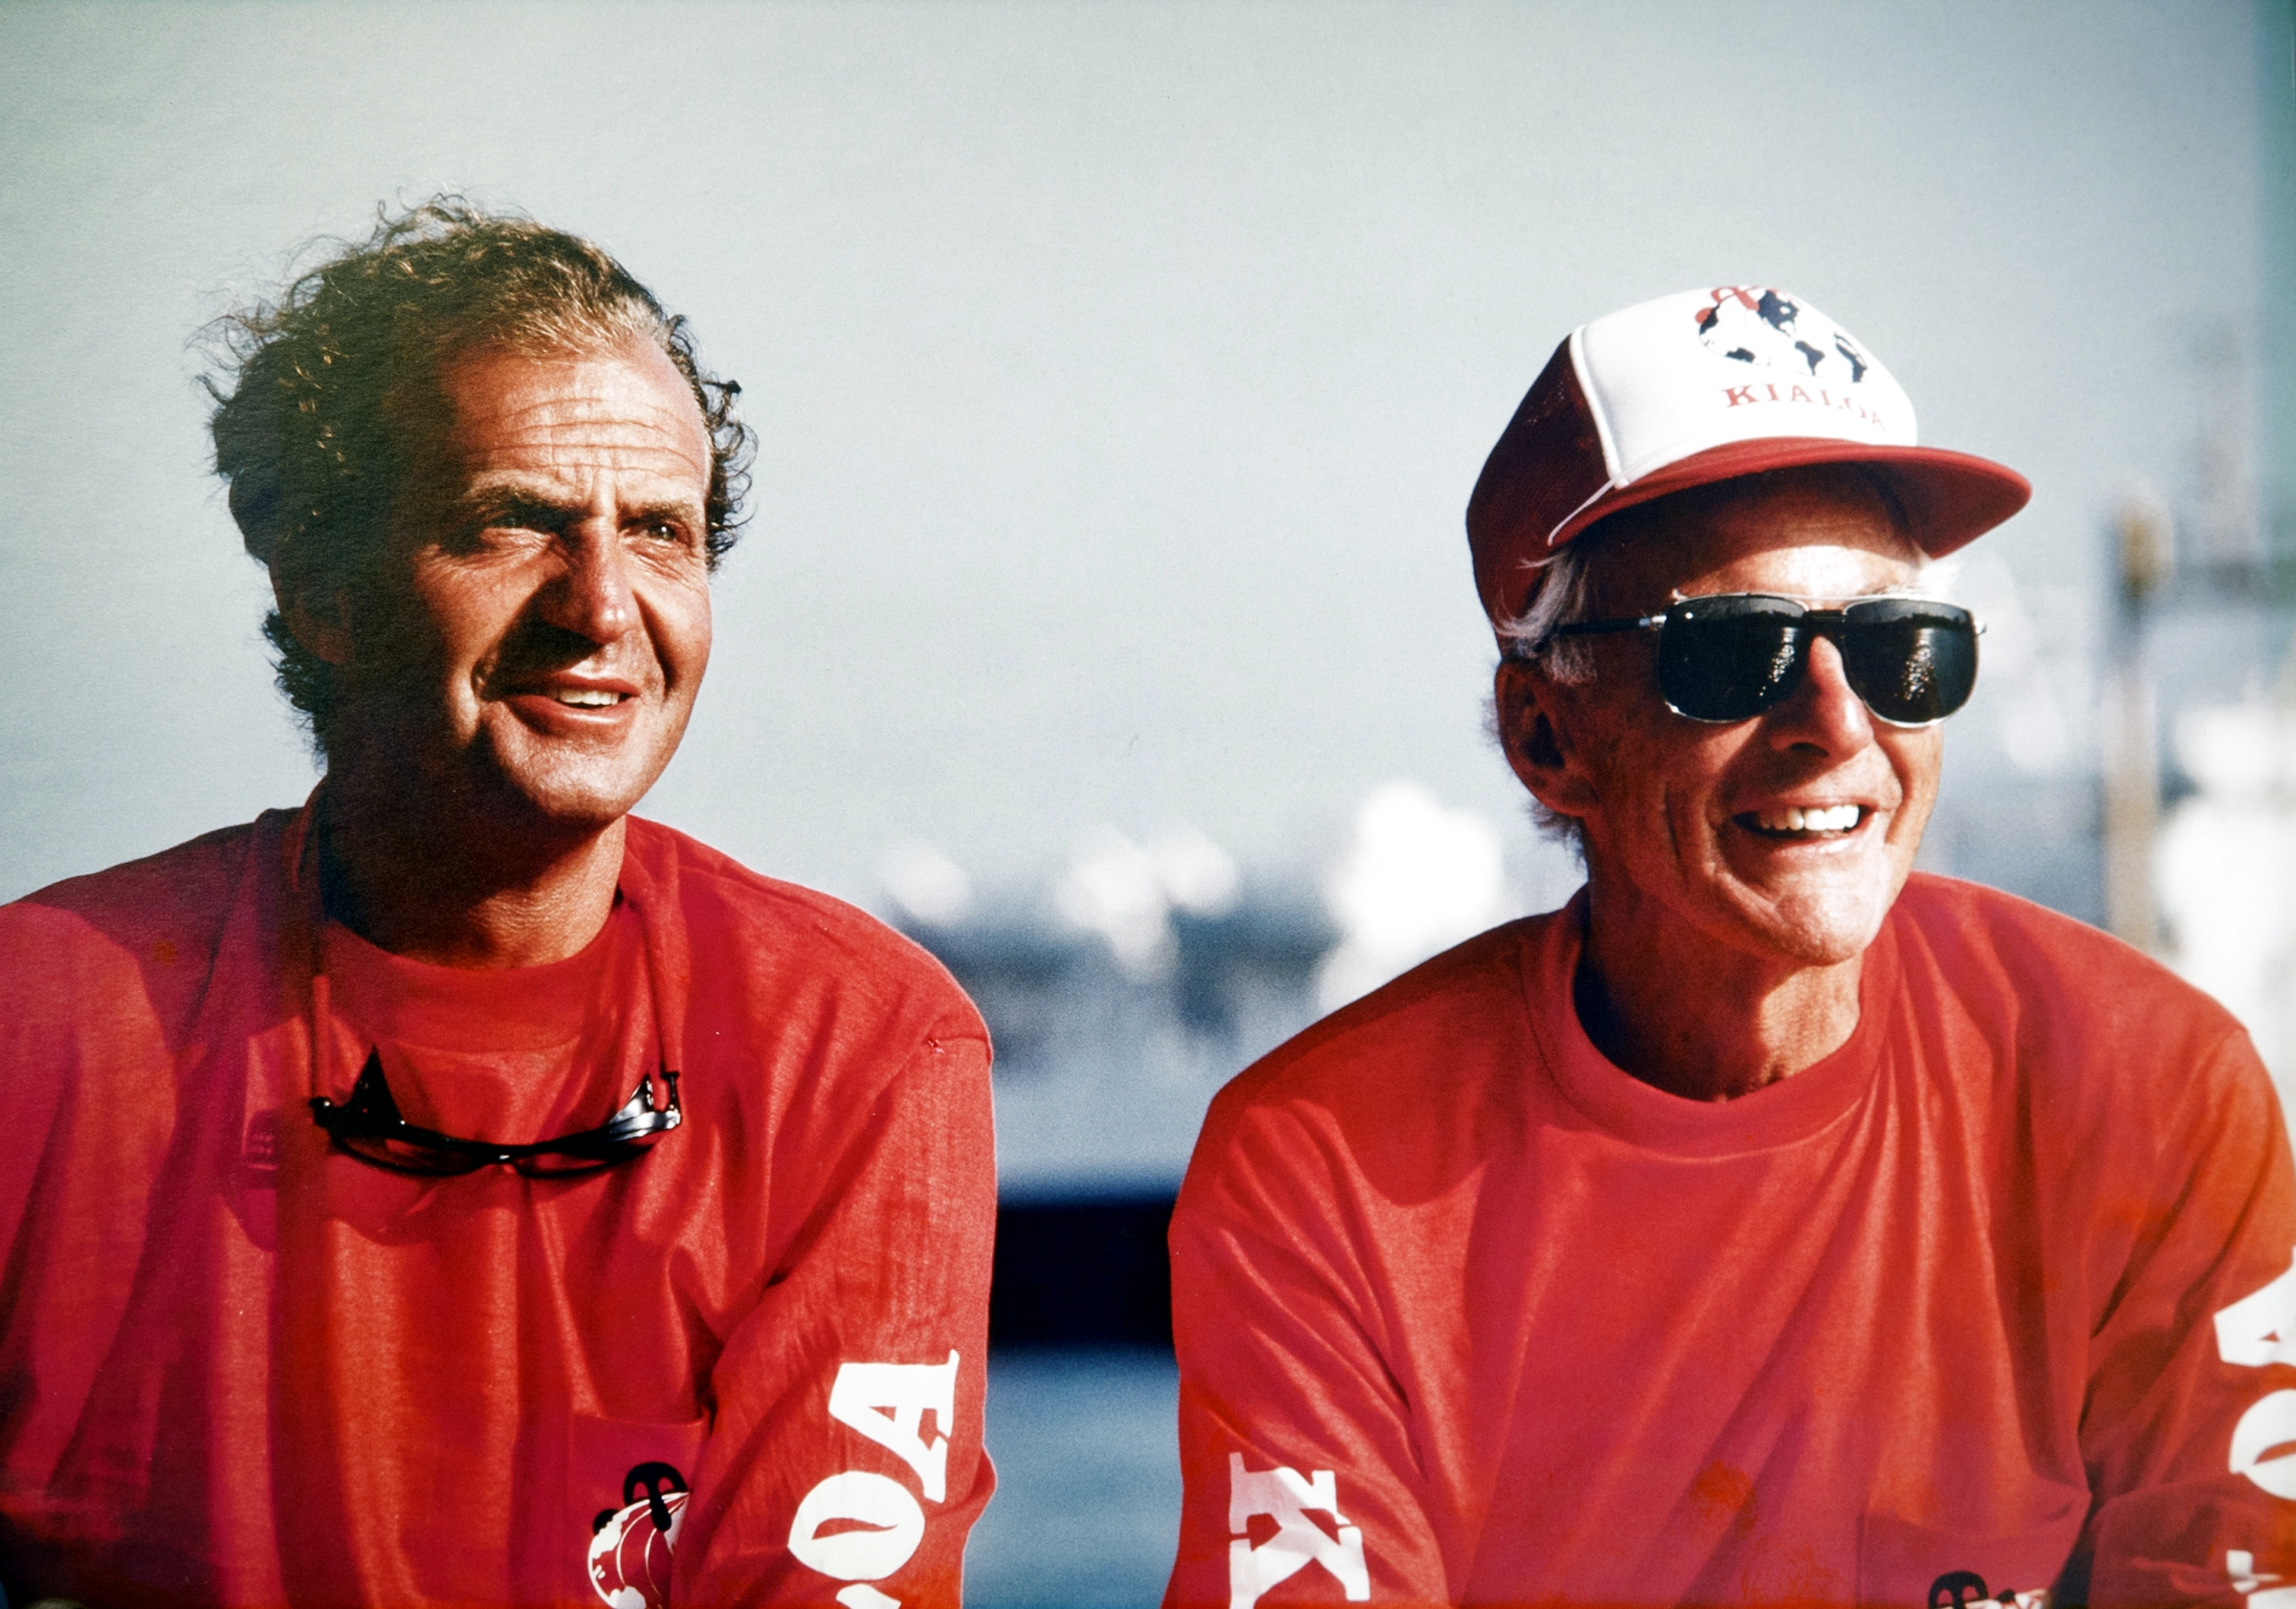 Juan Carlos, King of Spain, and Jim Kilroy in the 1980s